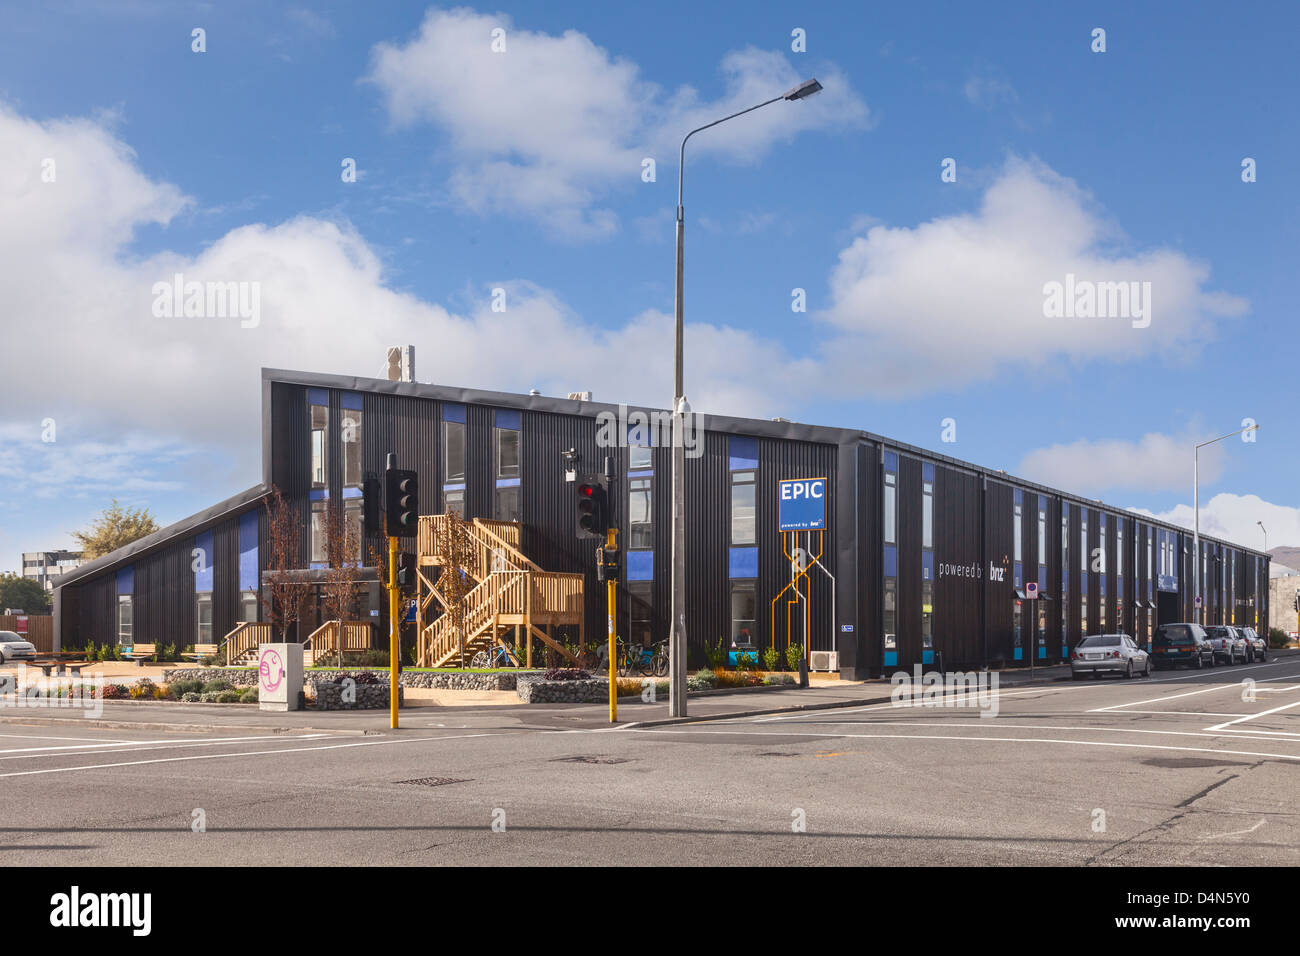 The EPIC Sanctuary building is an incubator for high-tech startup businesses in Christchurch, New Zealand. - Stock Image